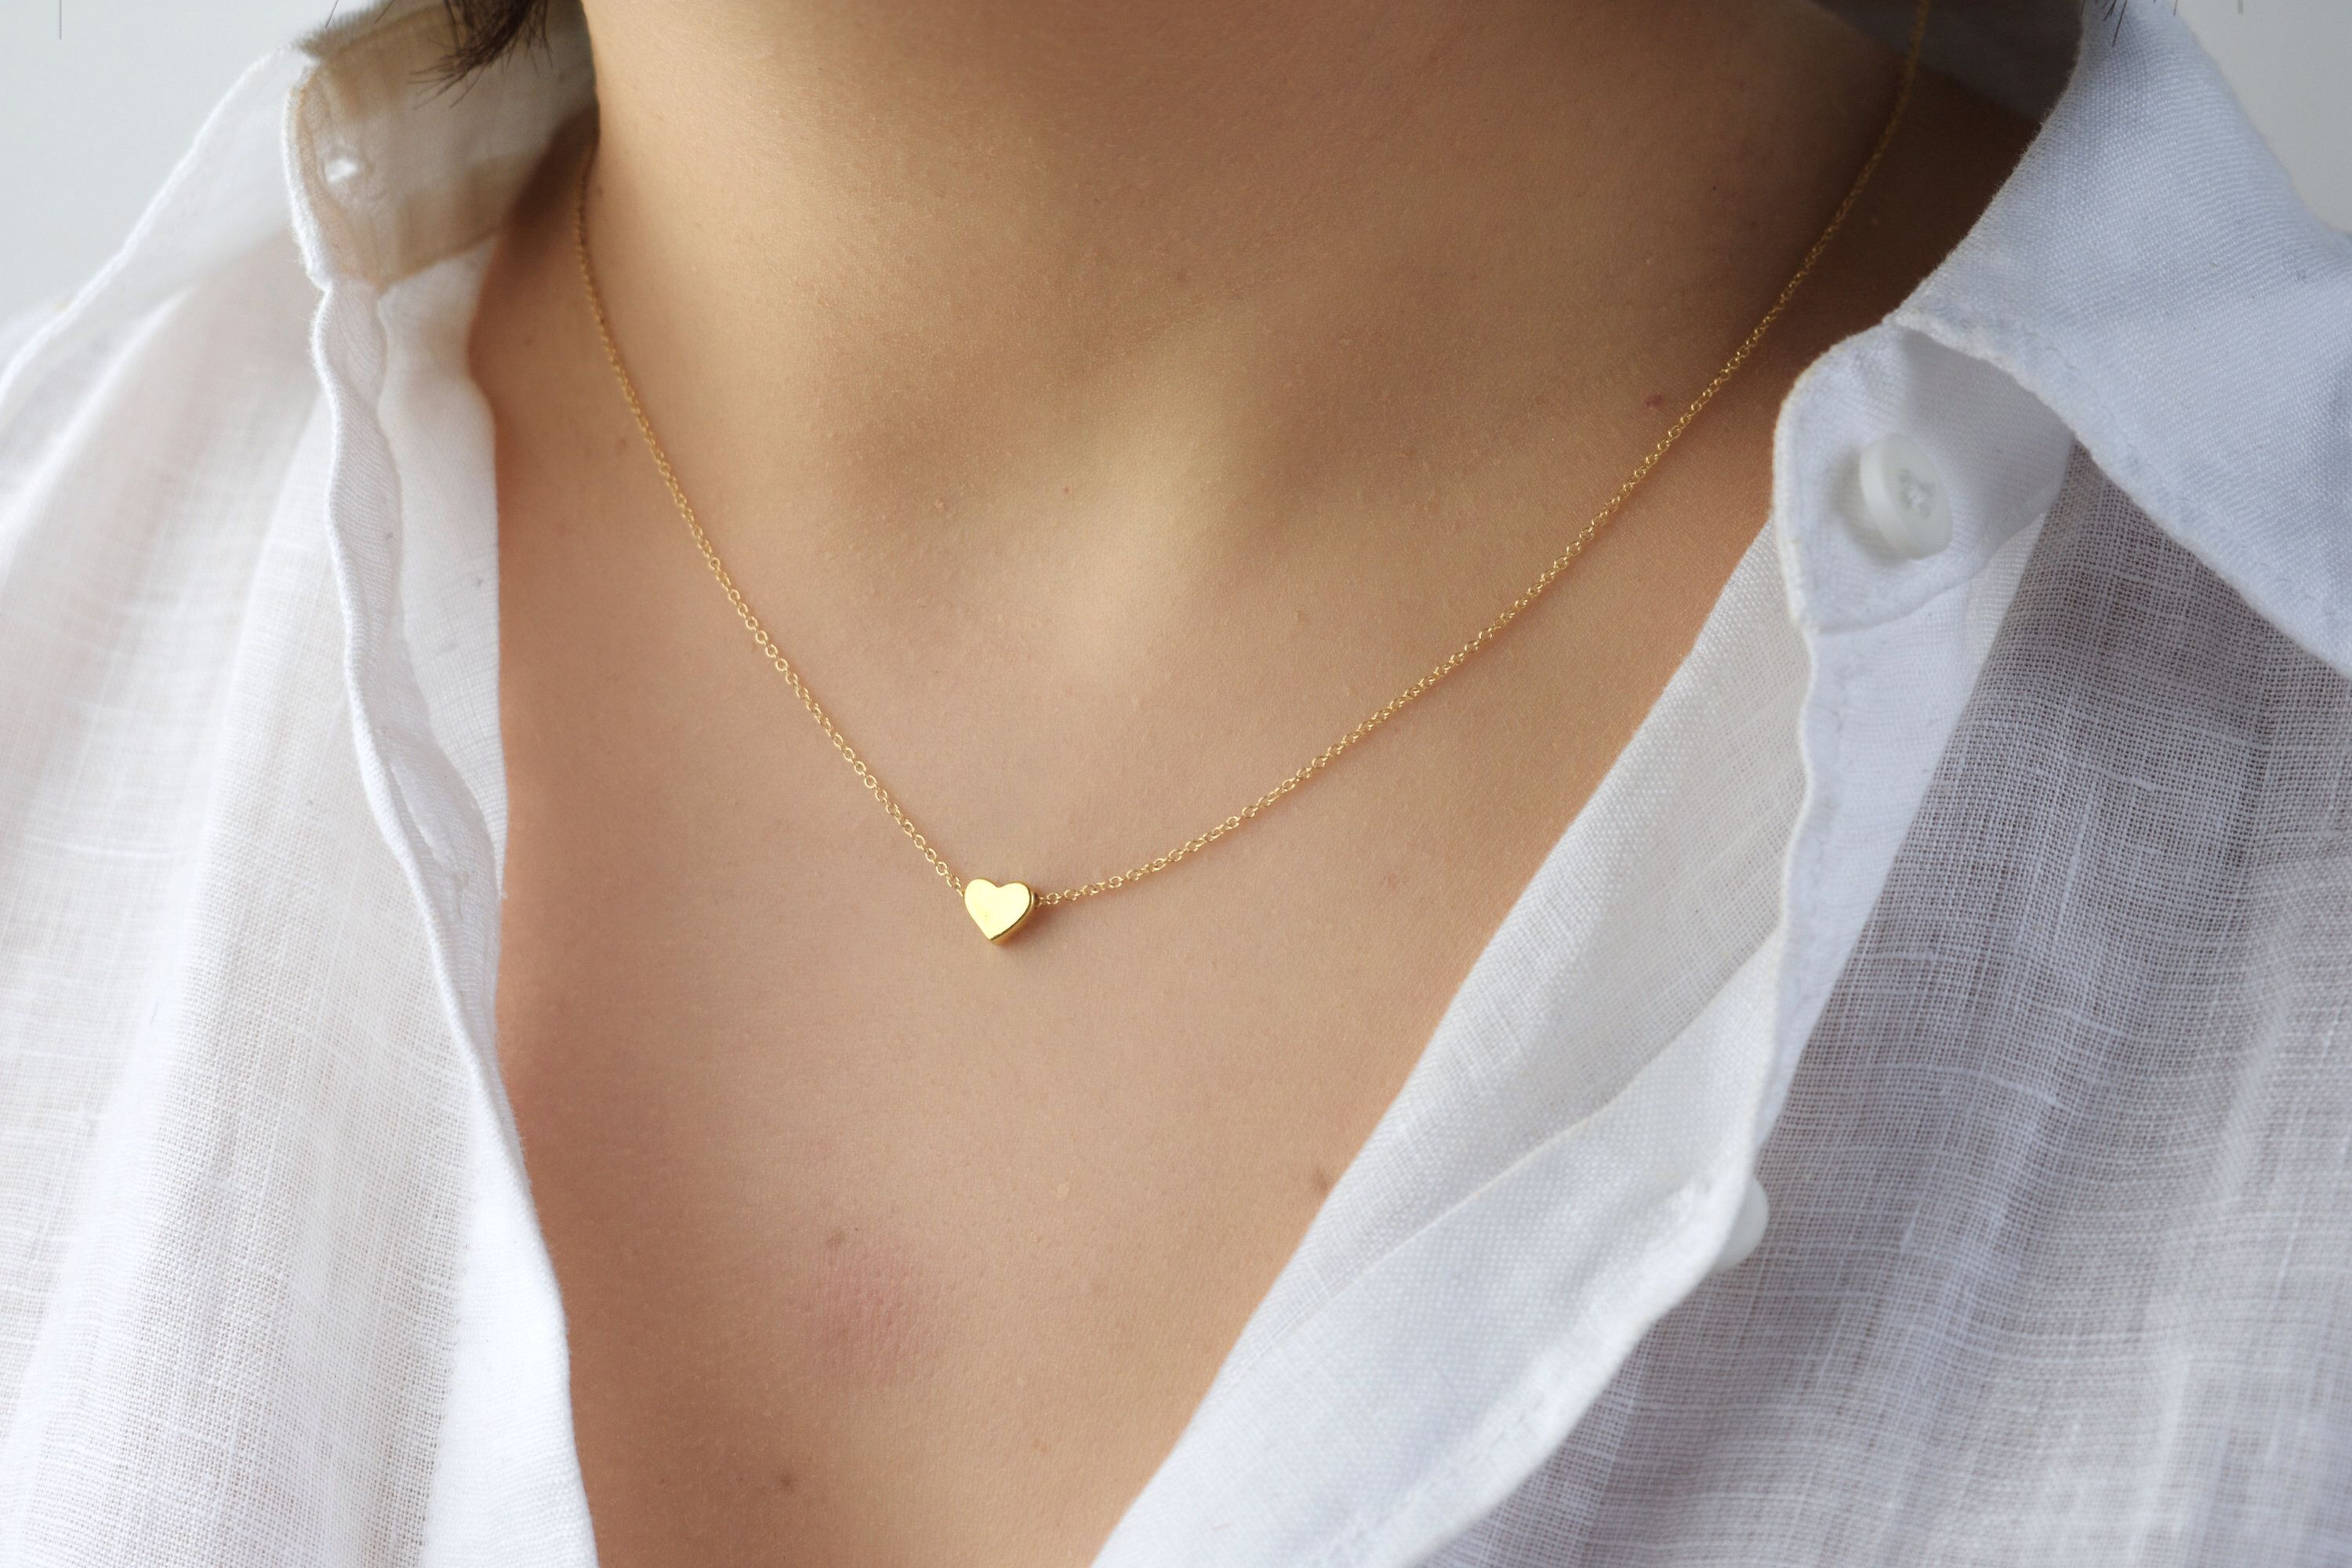 Gold Heart Necklace Simple Necklace Gift necklace Modern Necklace Delicate Necklace Gold Vermeil Necklace Set Dainty Heart Necklace